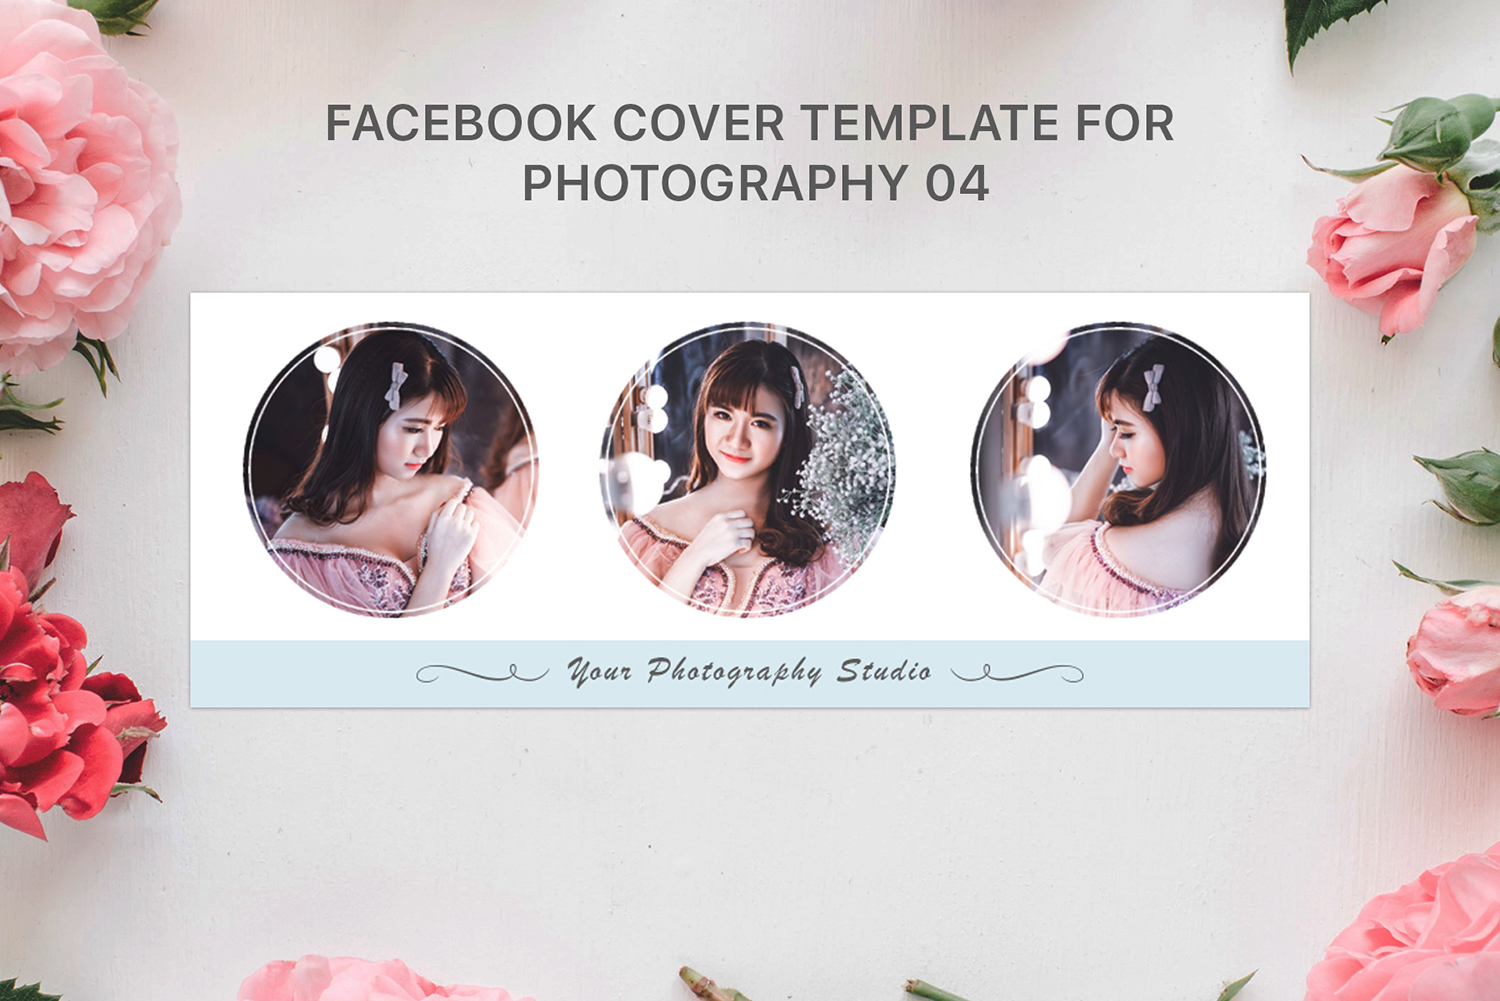 Facebook Cover Template For Photography 04